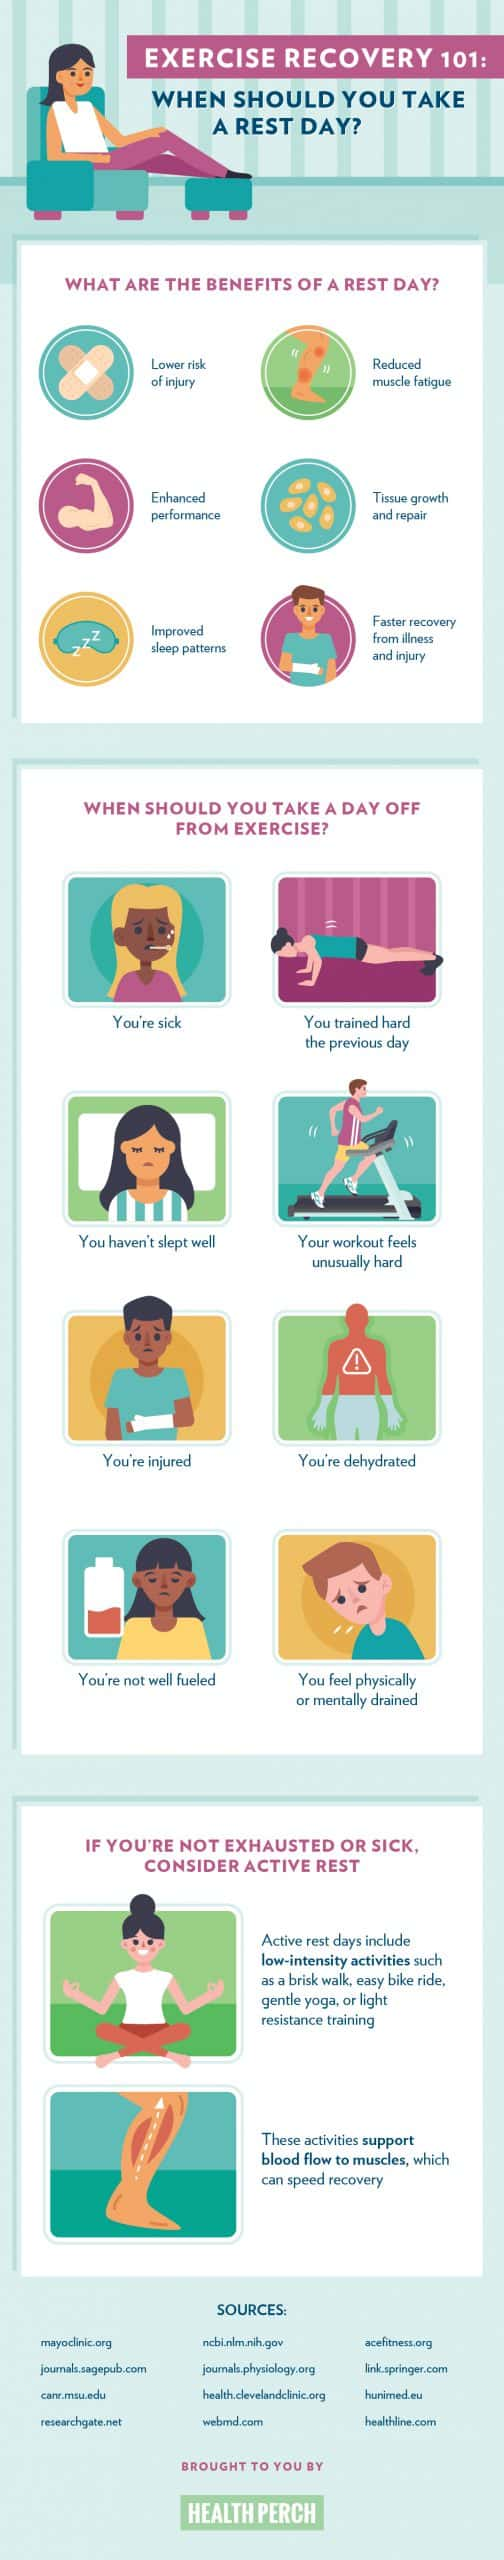 8 Times You Should Take a Rest Day